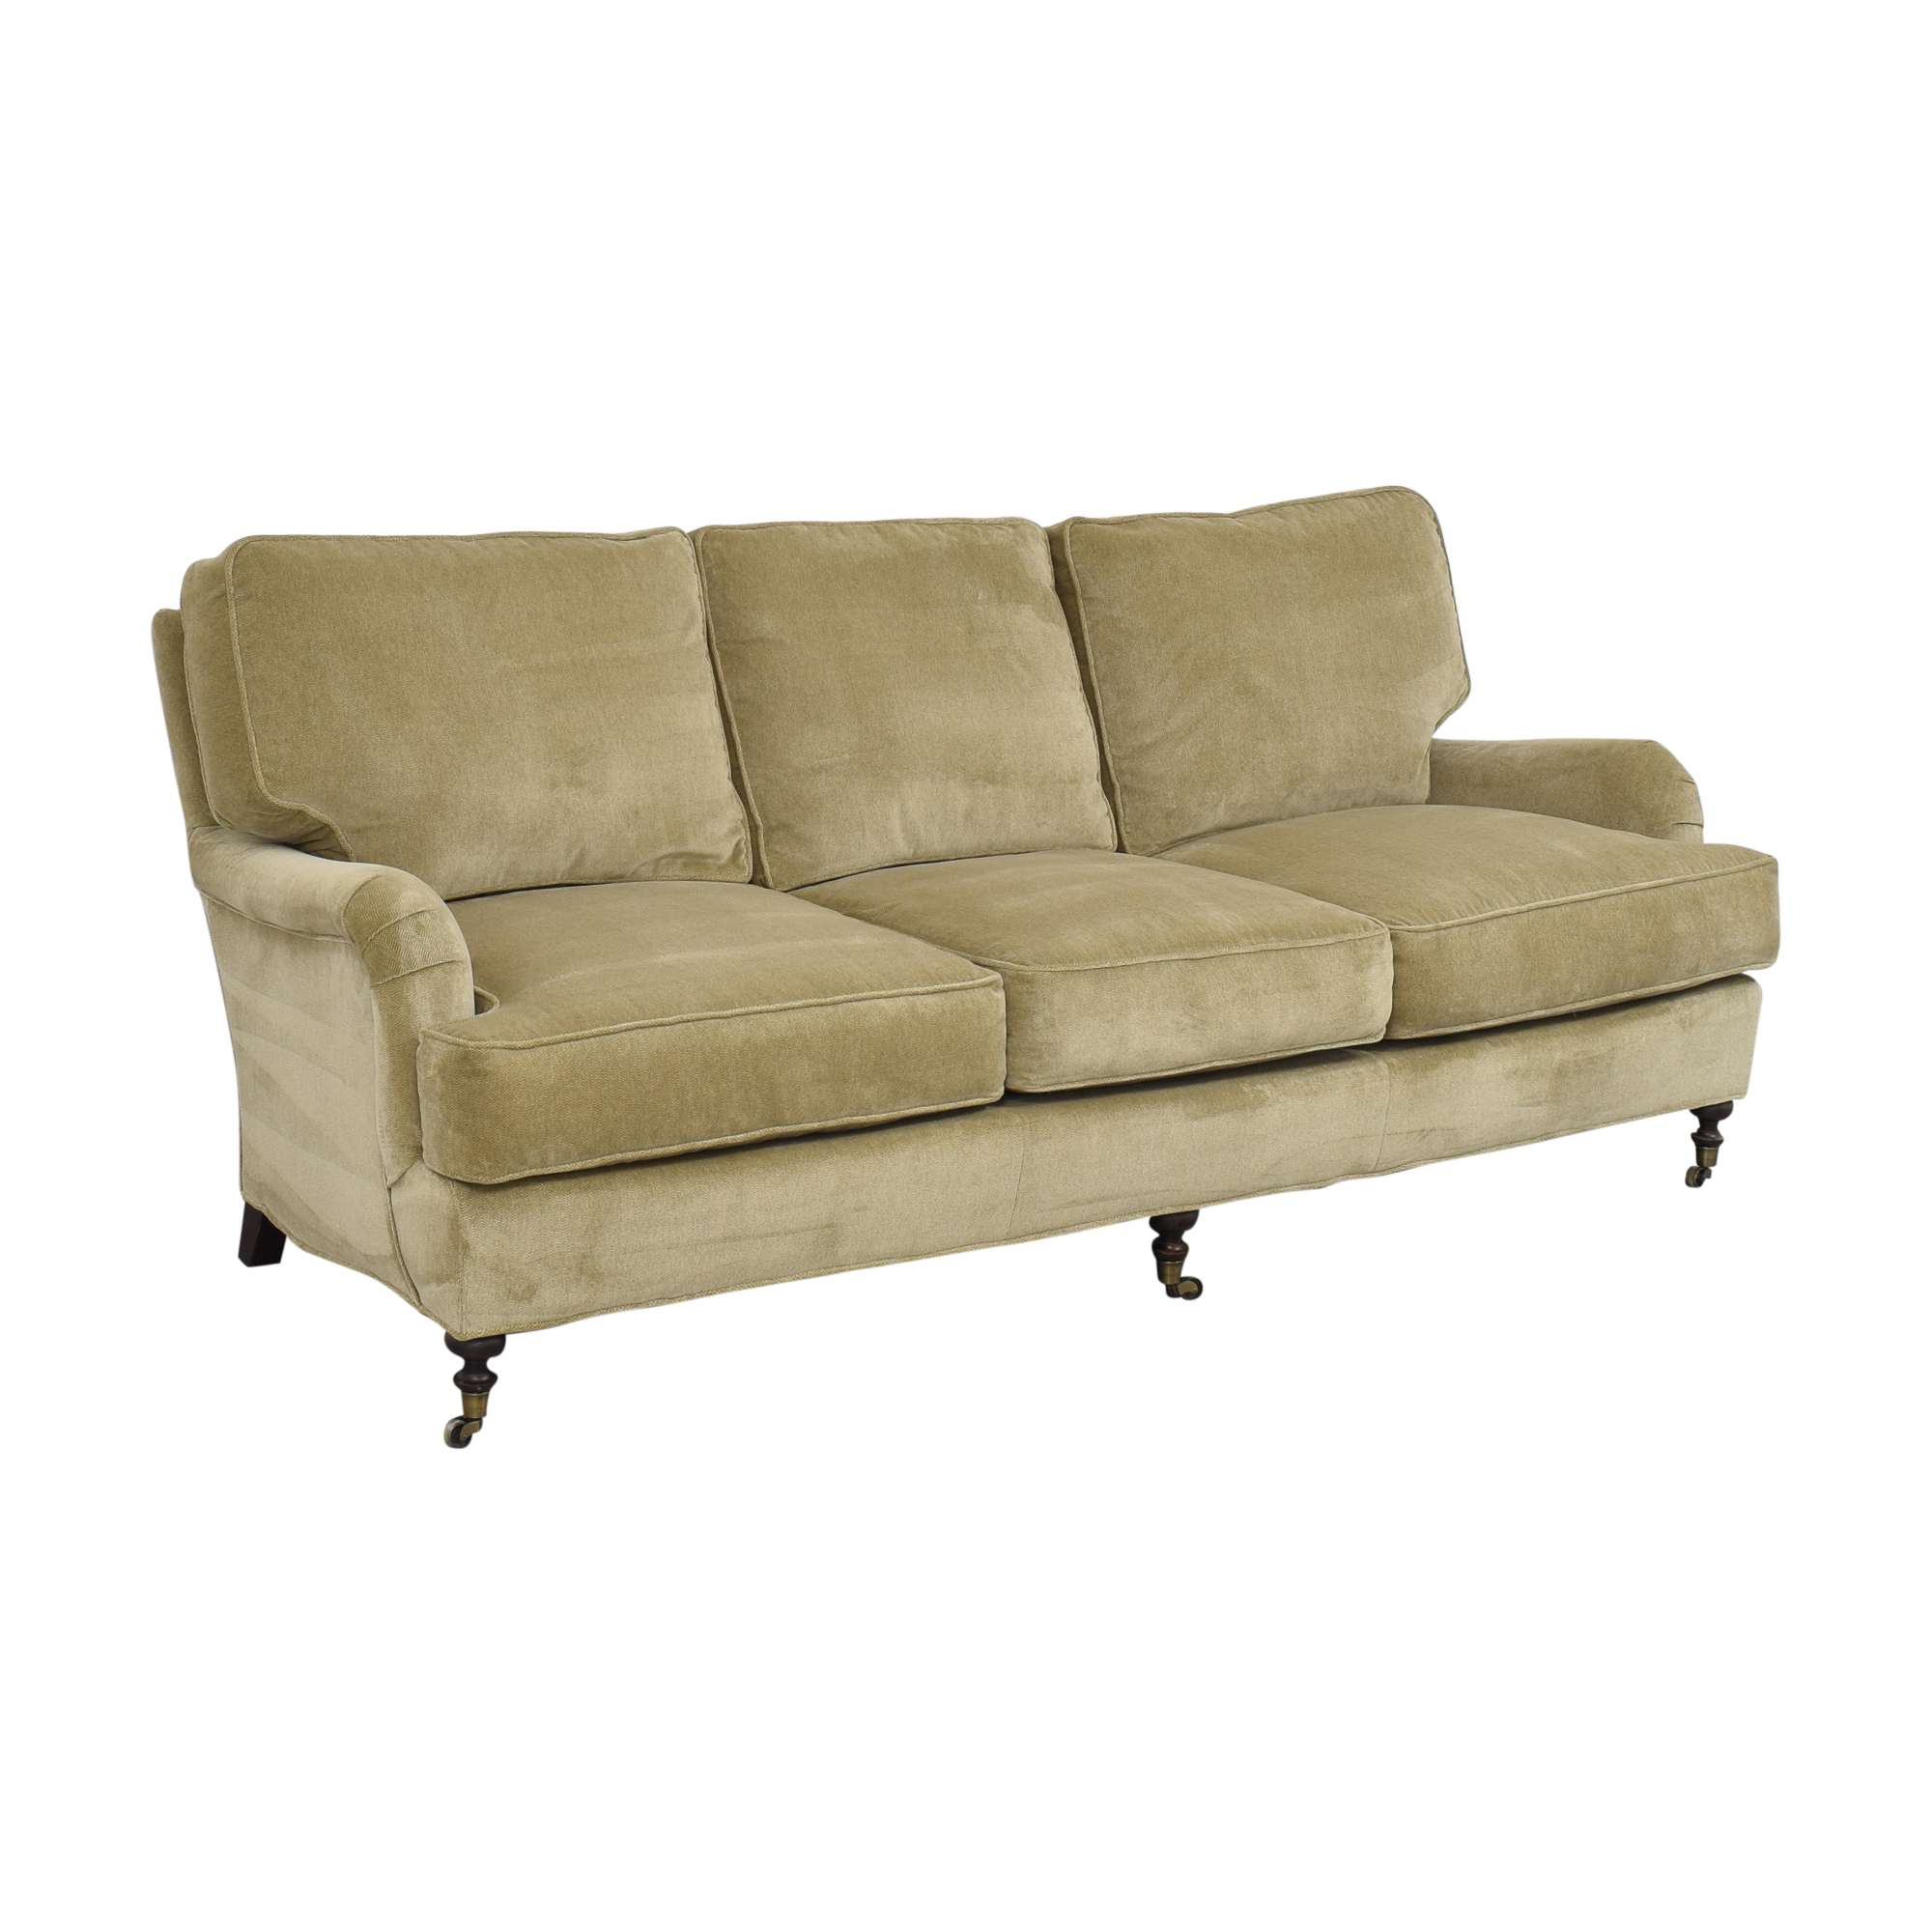 buy Lee Industries Three Cushion Sofa with Casters Lee Industries Sofas